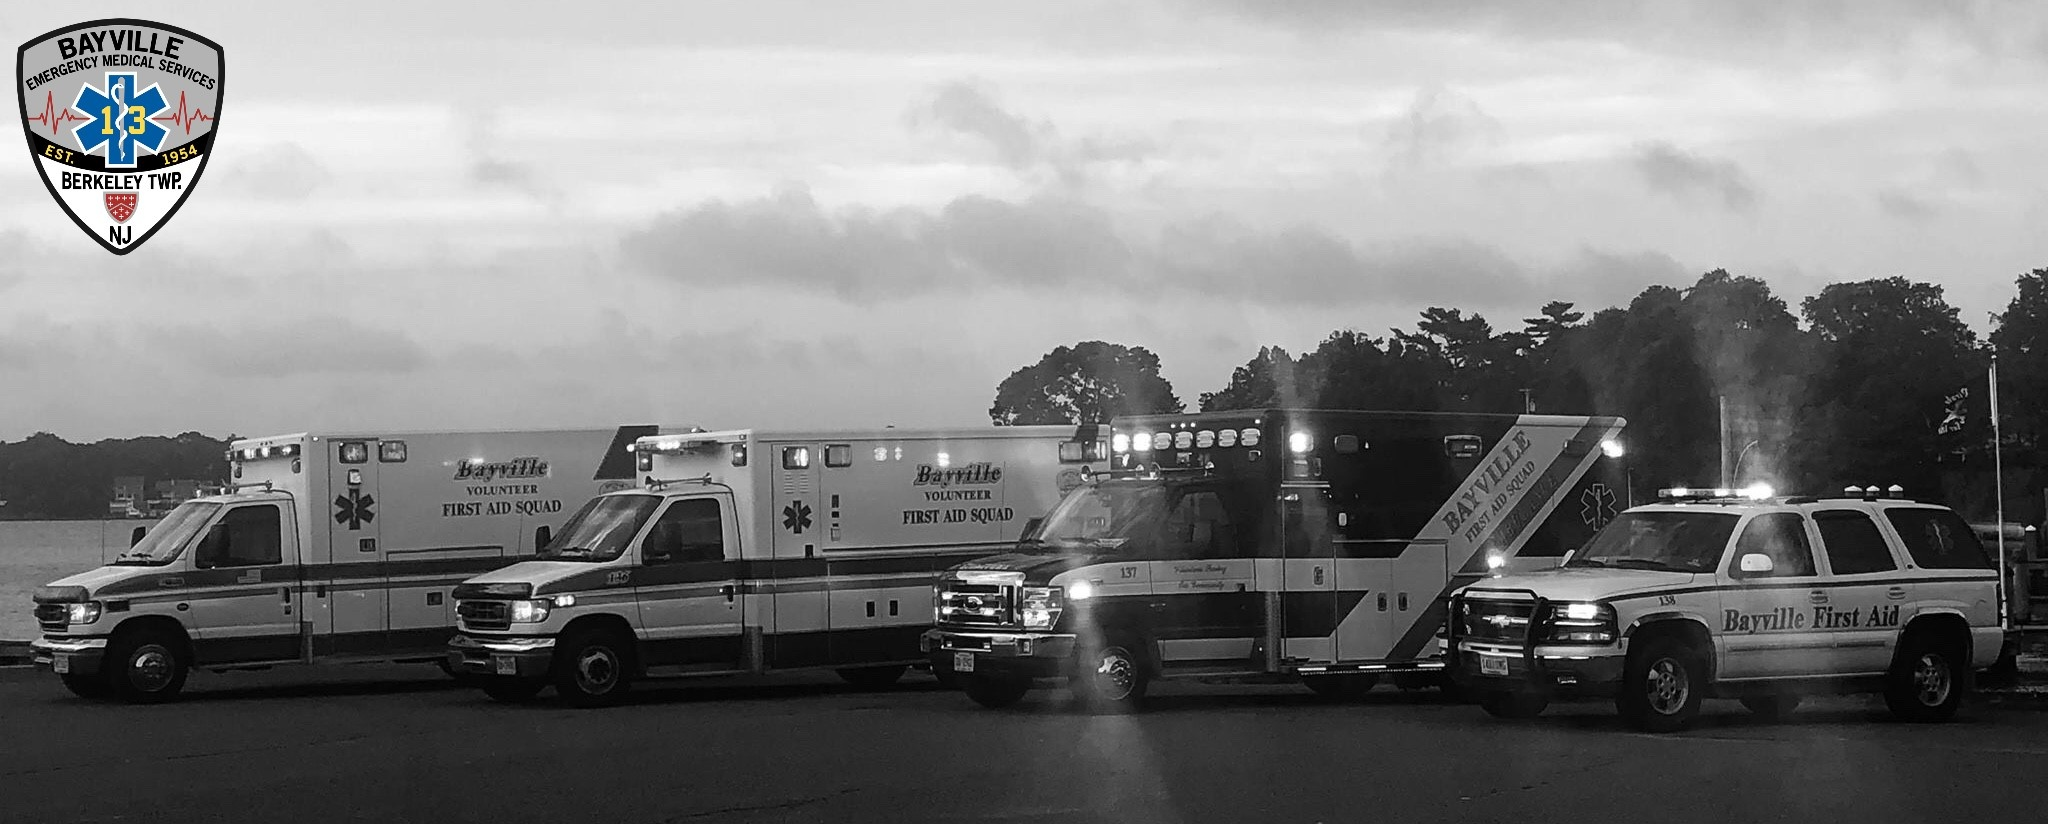 Bayville Emergency Medical Services